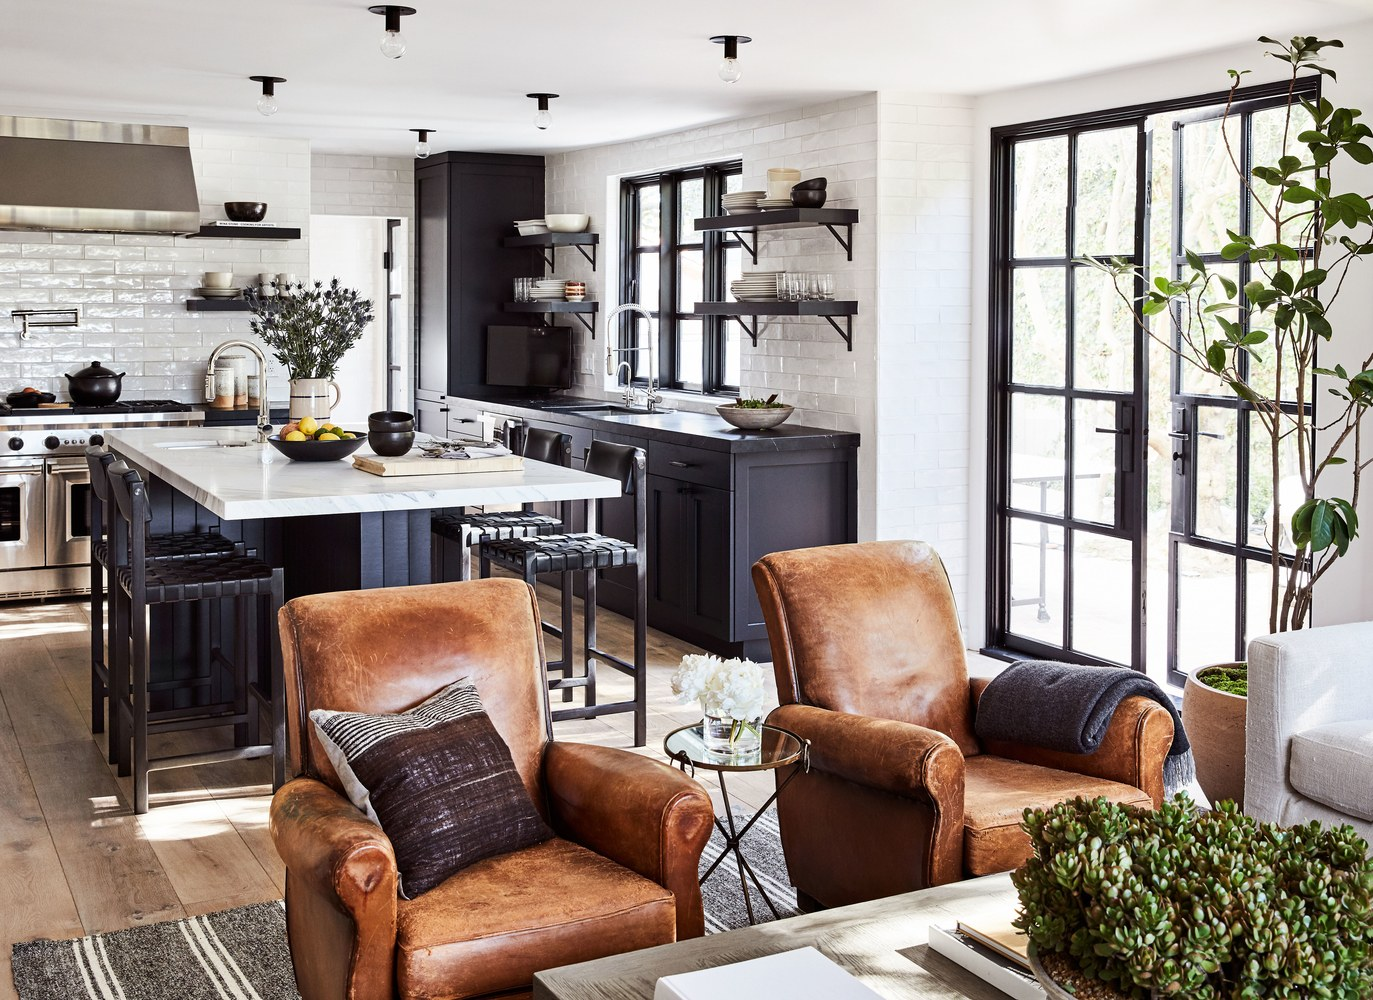 Go black in the kitchen - It's dramatic and elegant